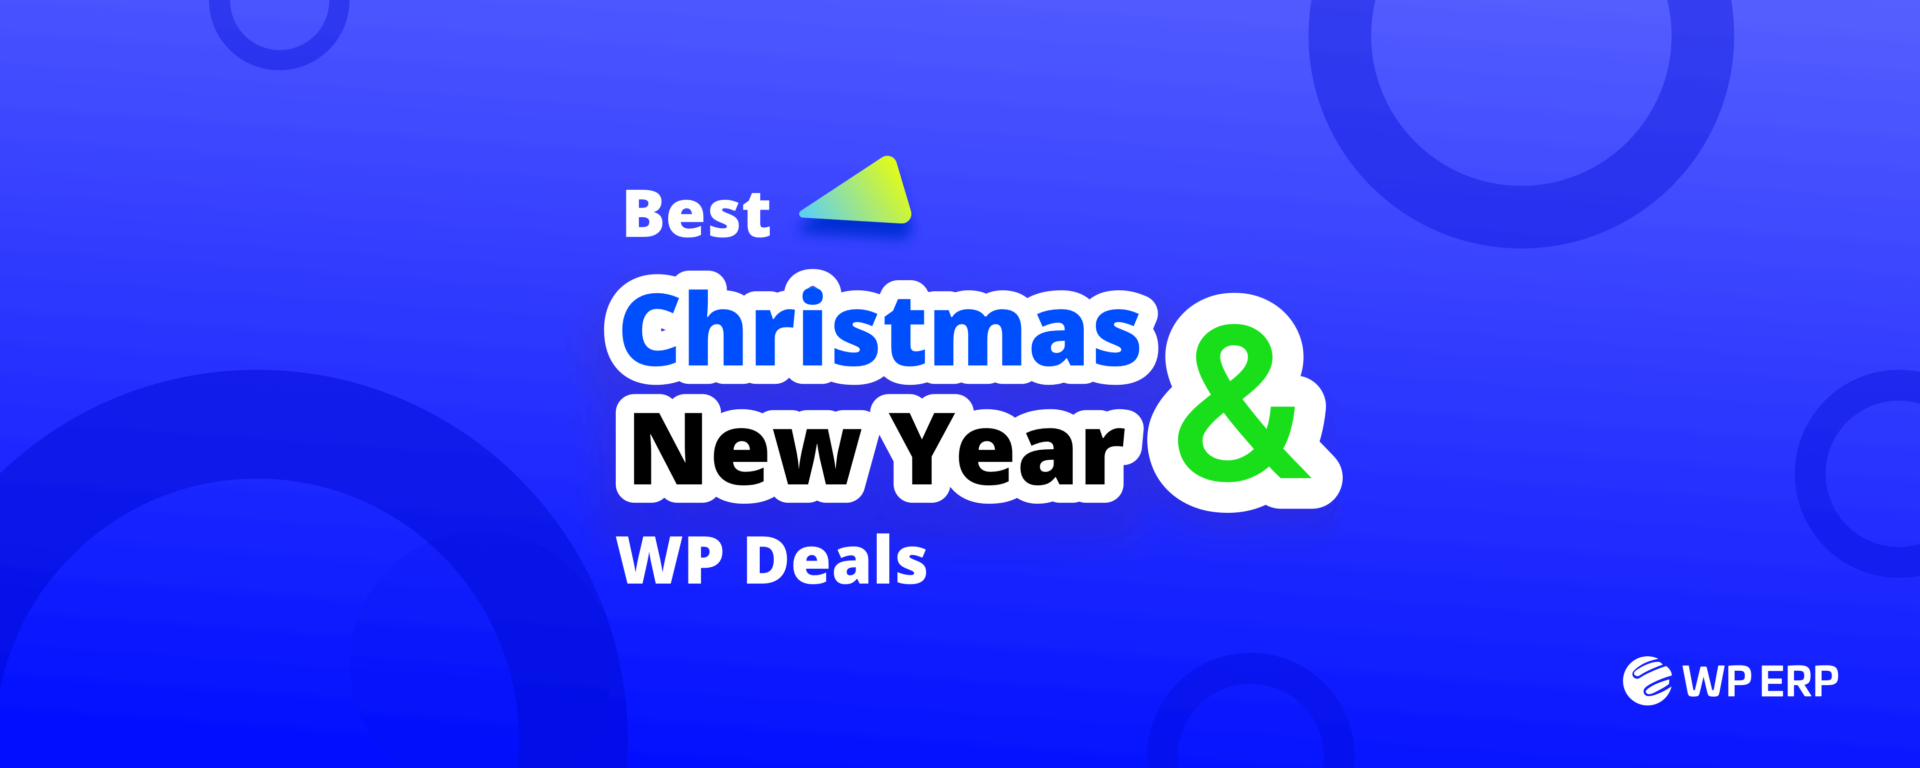 Chrismas Deals feature image